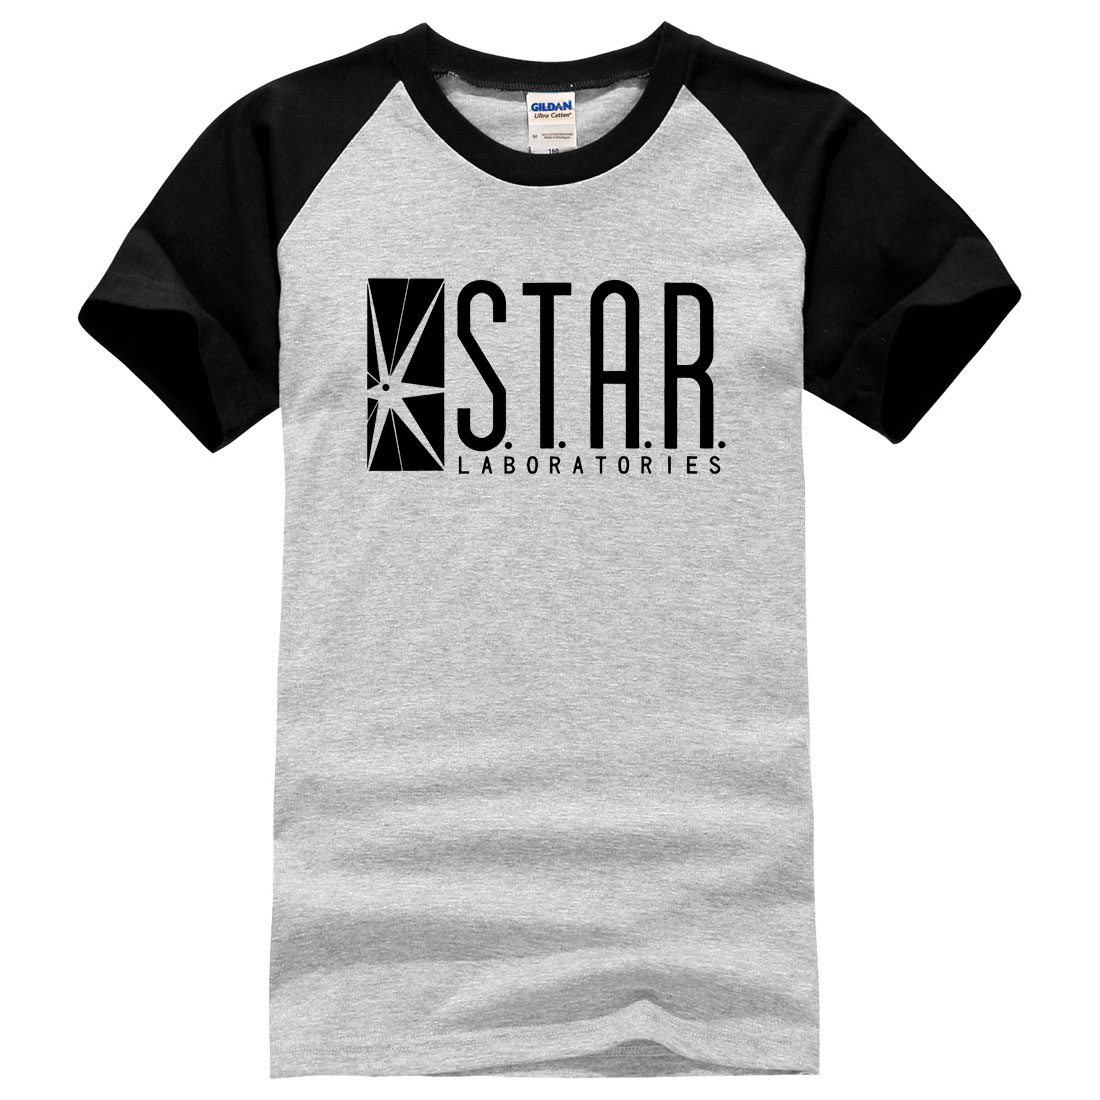 superman series o-neck t shirt men STAR S.T.A.R.labs jumper the flash gotham city comic books black t shirts new fashion summer image